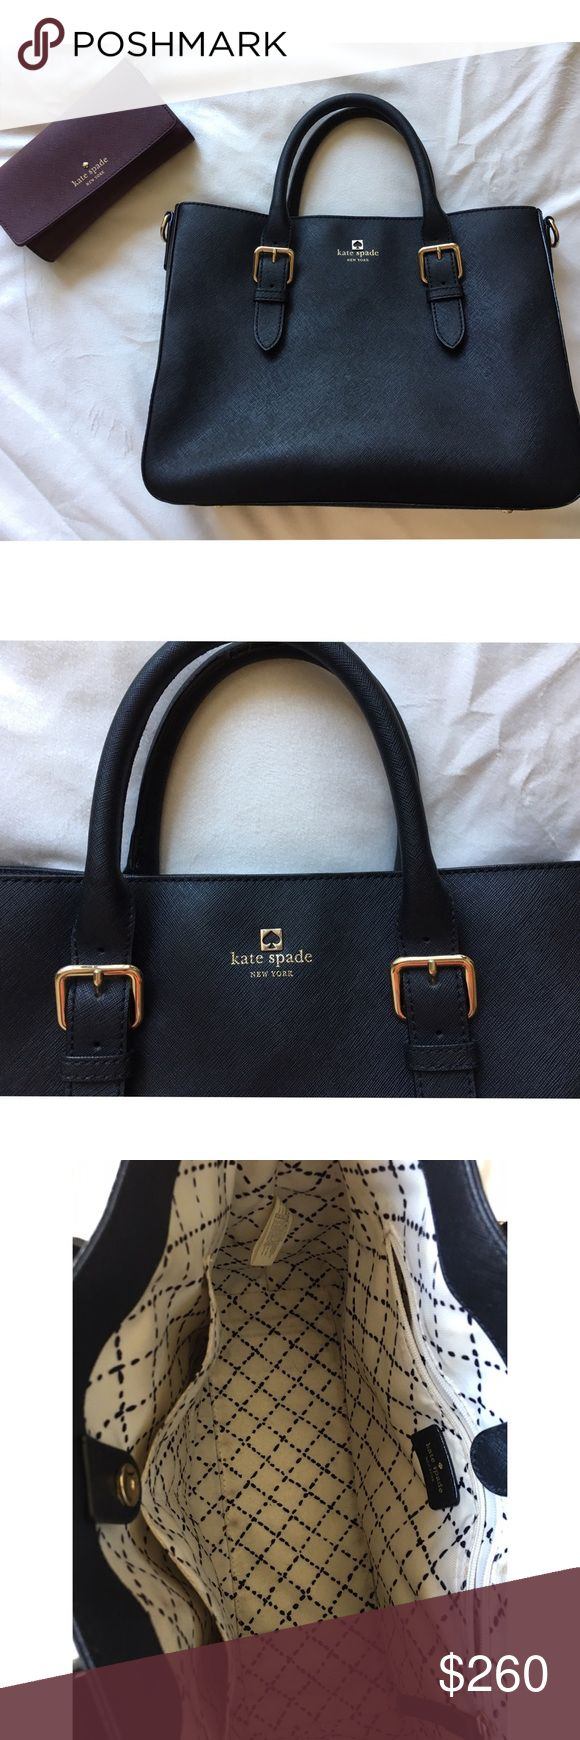 Kate Spade Black and Gold Handbag Very classy and sophisticated Kate Spade Handbag. Minor usage. Has a small makeup stain in the inside but easily able to clean. Looks brand new in person. Let me know if you have any questions! :) kate spade Bags Shoulder Bags